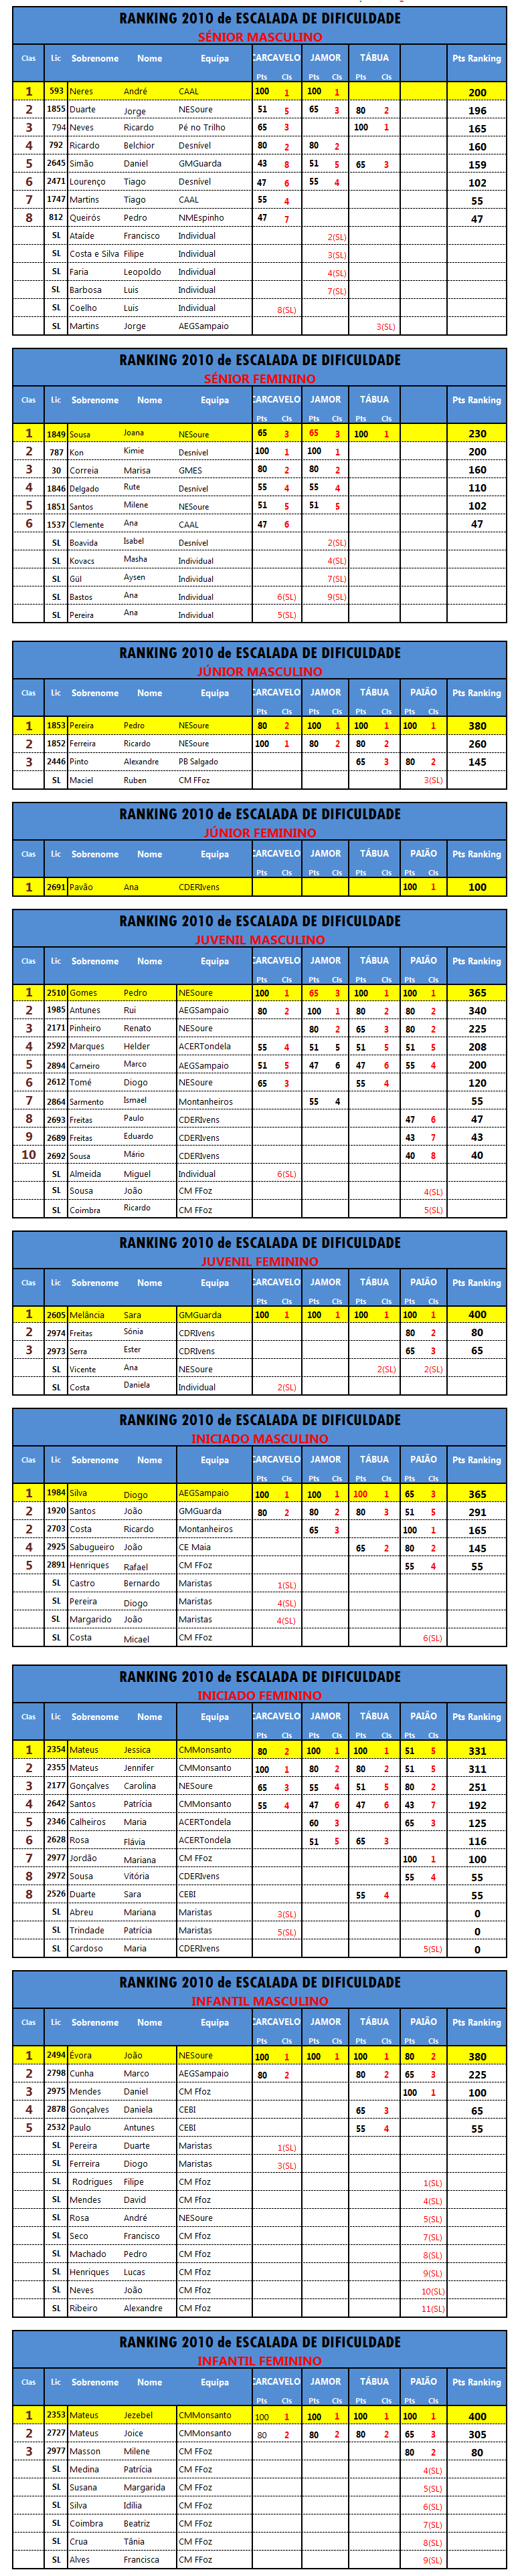 Ranking Dificuldade 2010